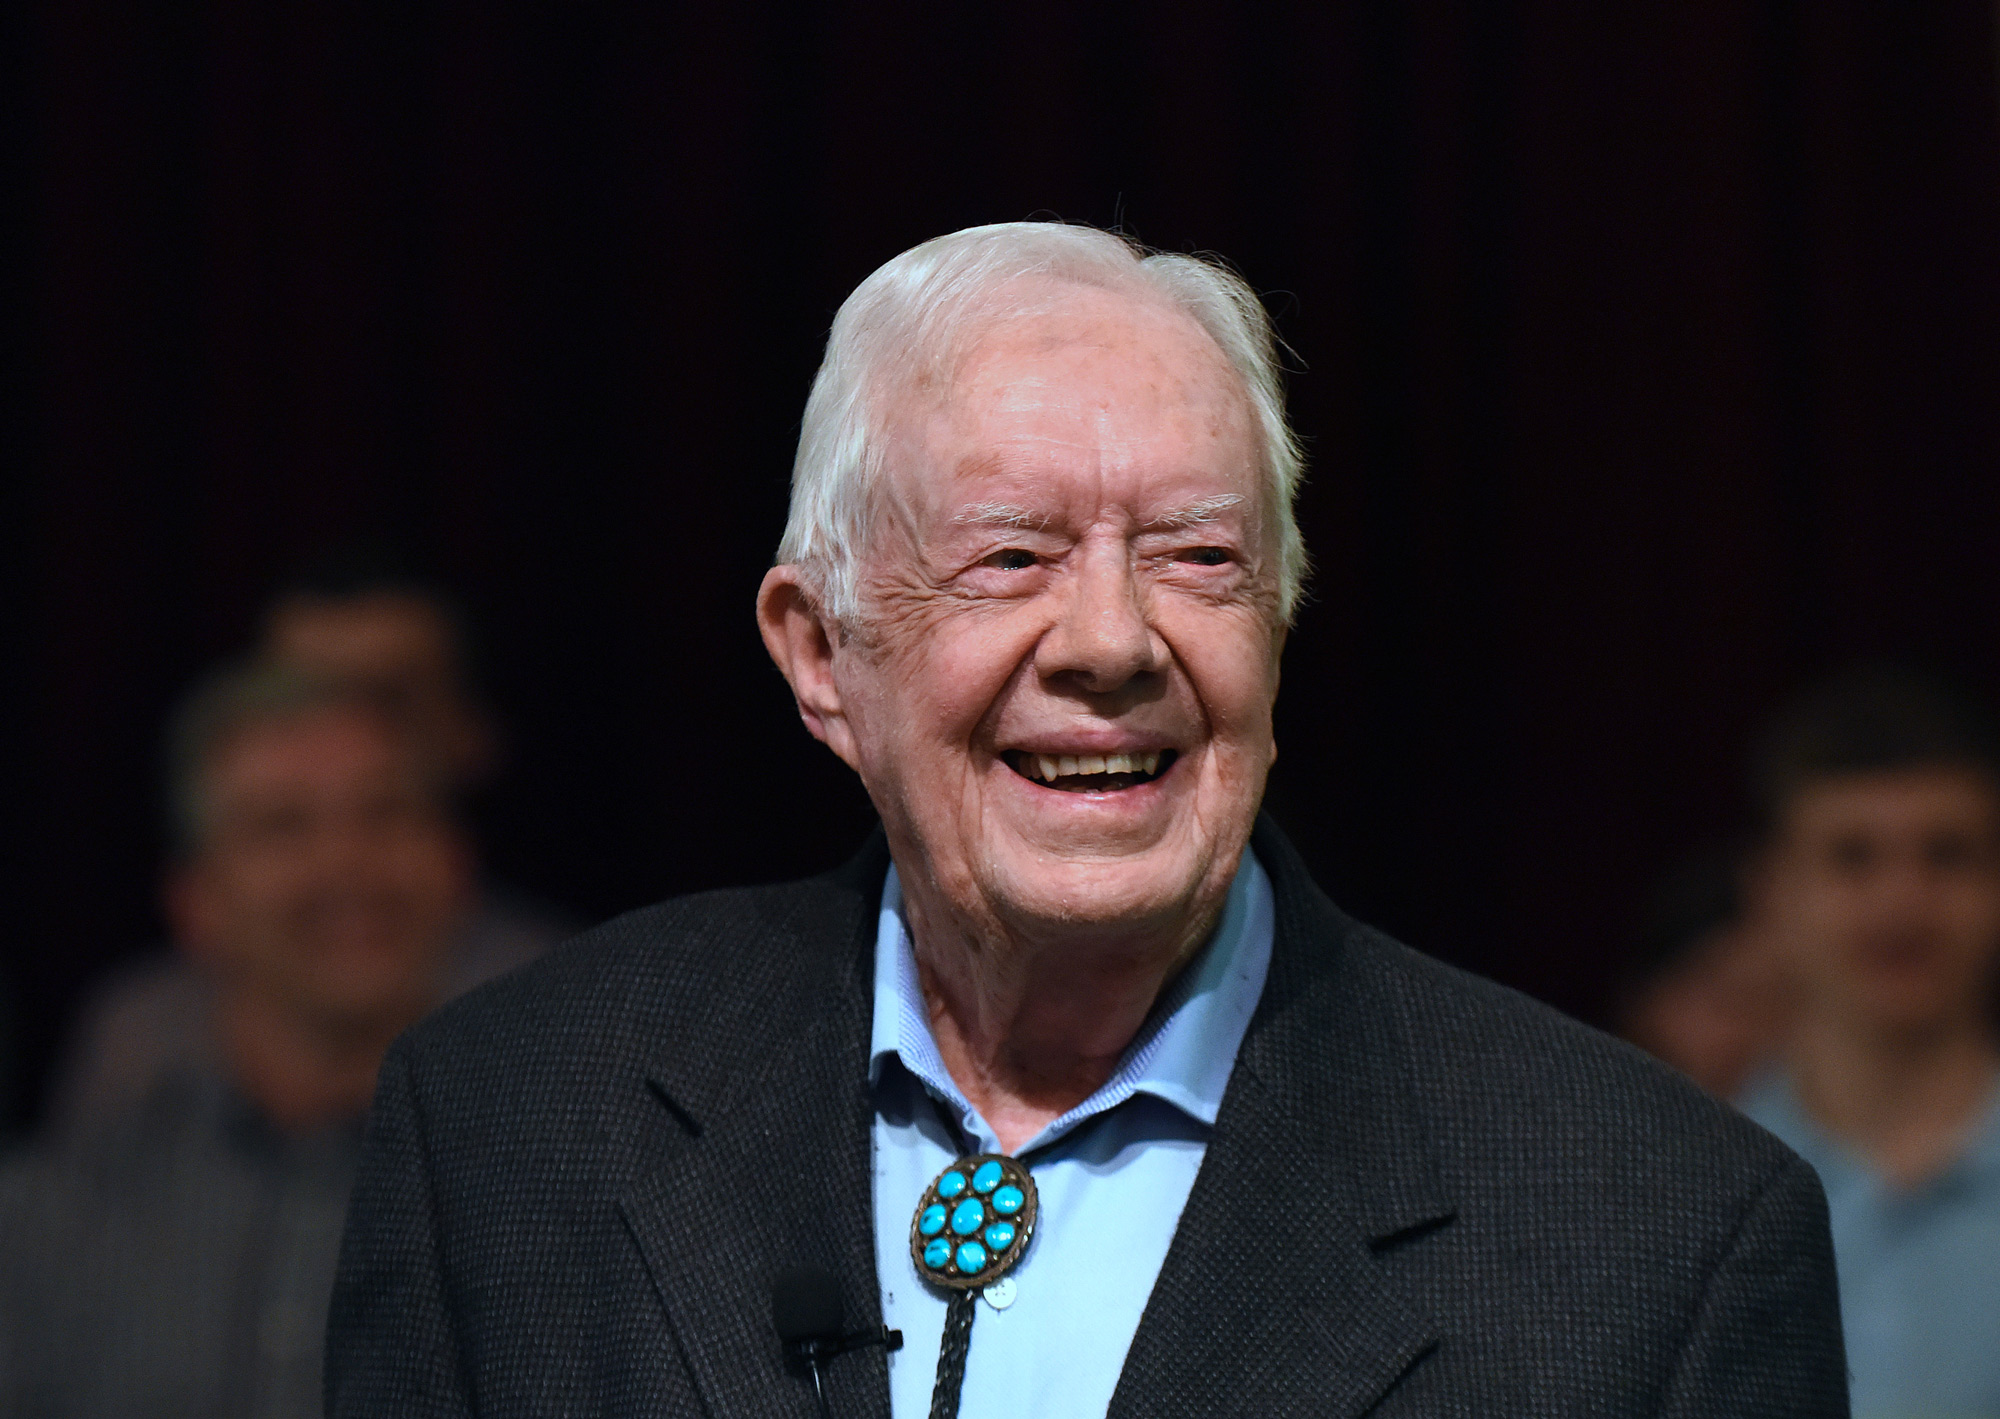 Former President Jimmy Carter speaks to the congregation at Maranatha Baptist Church in Plains, Georgia on April 28, 2019.